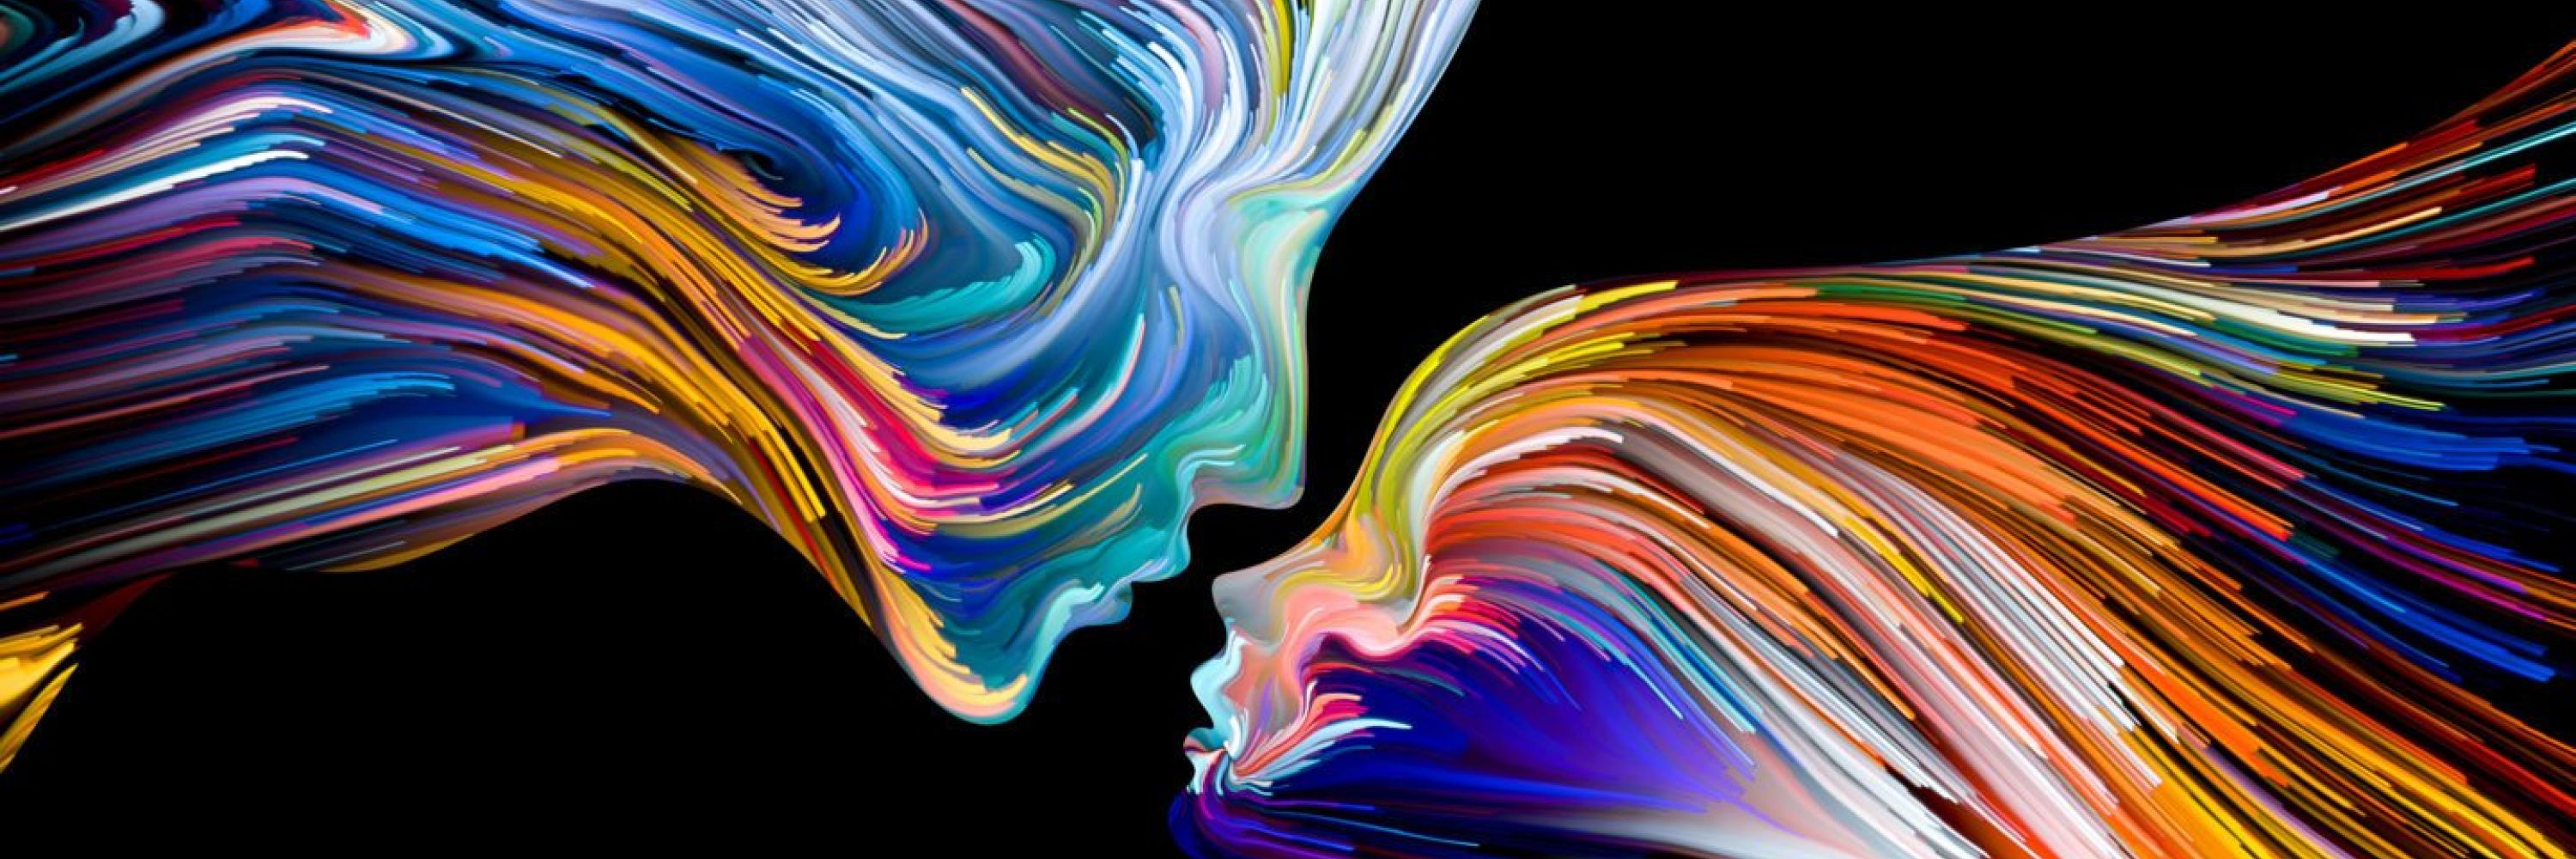 Does Consciousness have a Function?